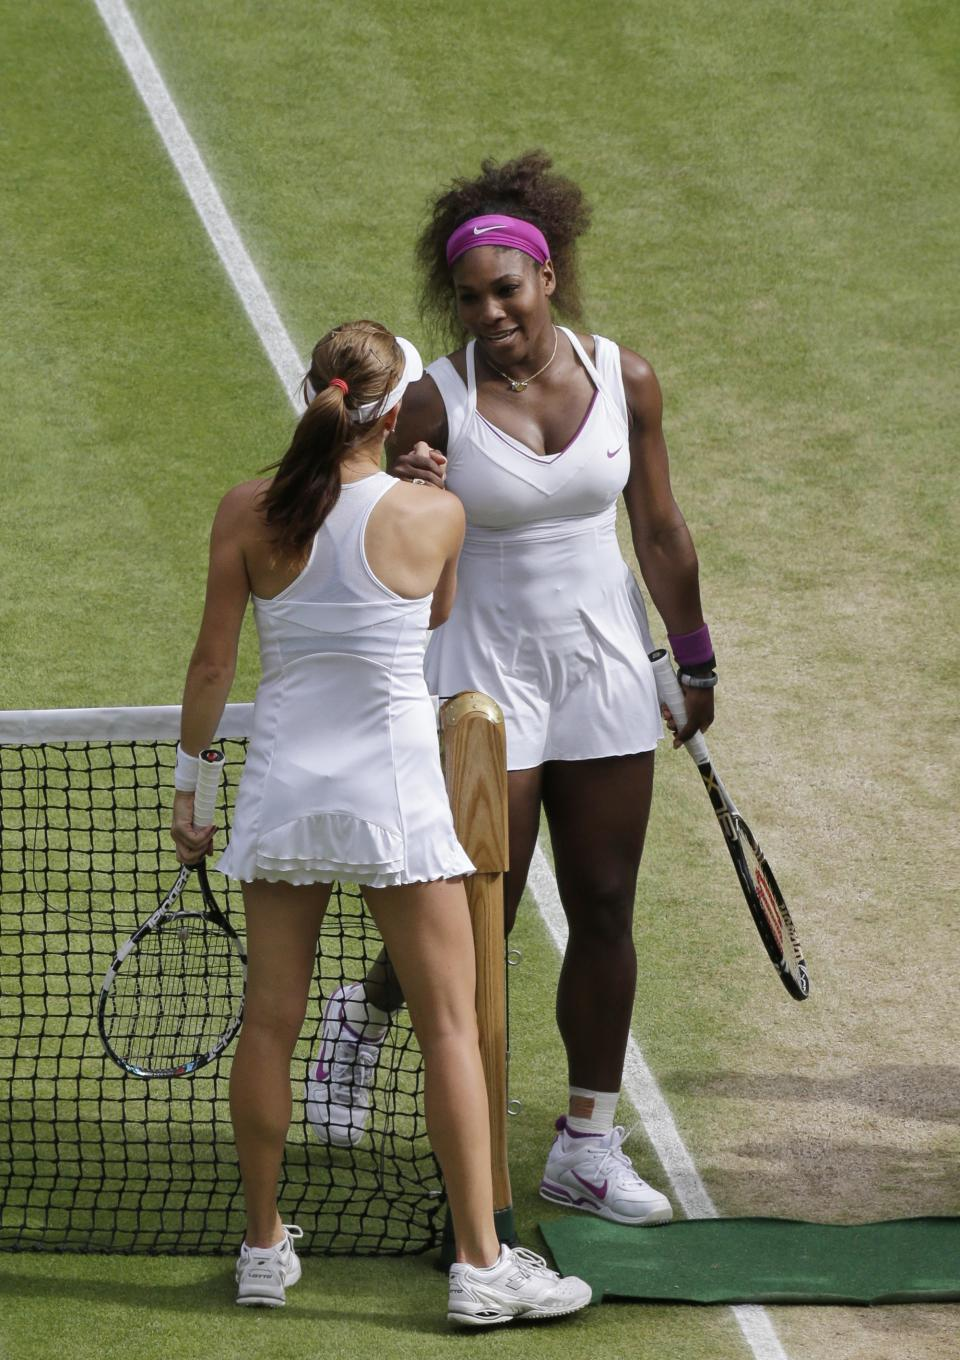 Serena Williams of the United States, right, is congratulated by Agnieszka Radwanska of Poland after winning the women's final match at the All England Lawn Tennis Championships at Wimbledon, England, Saturday, July 7, 2012. (AP Photo/Anja Niedringhaus, Pool)